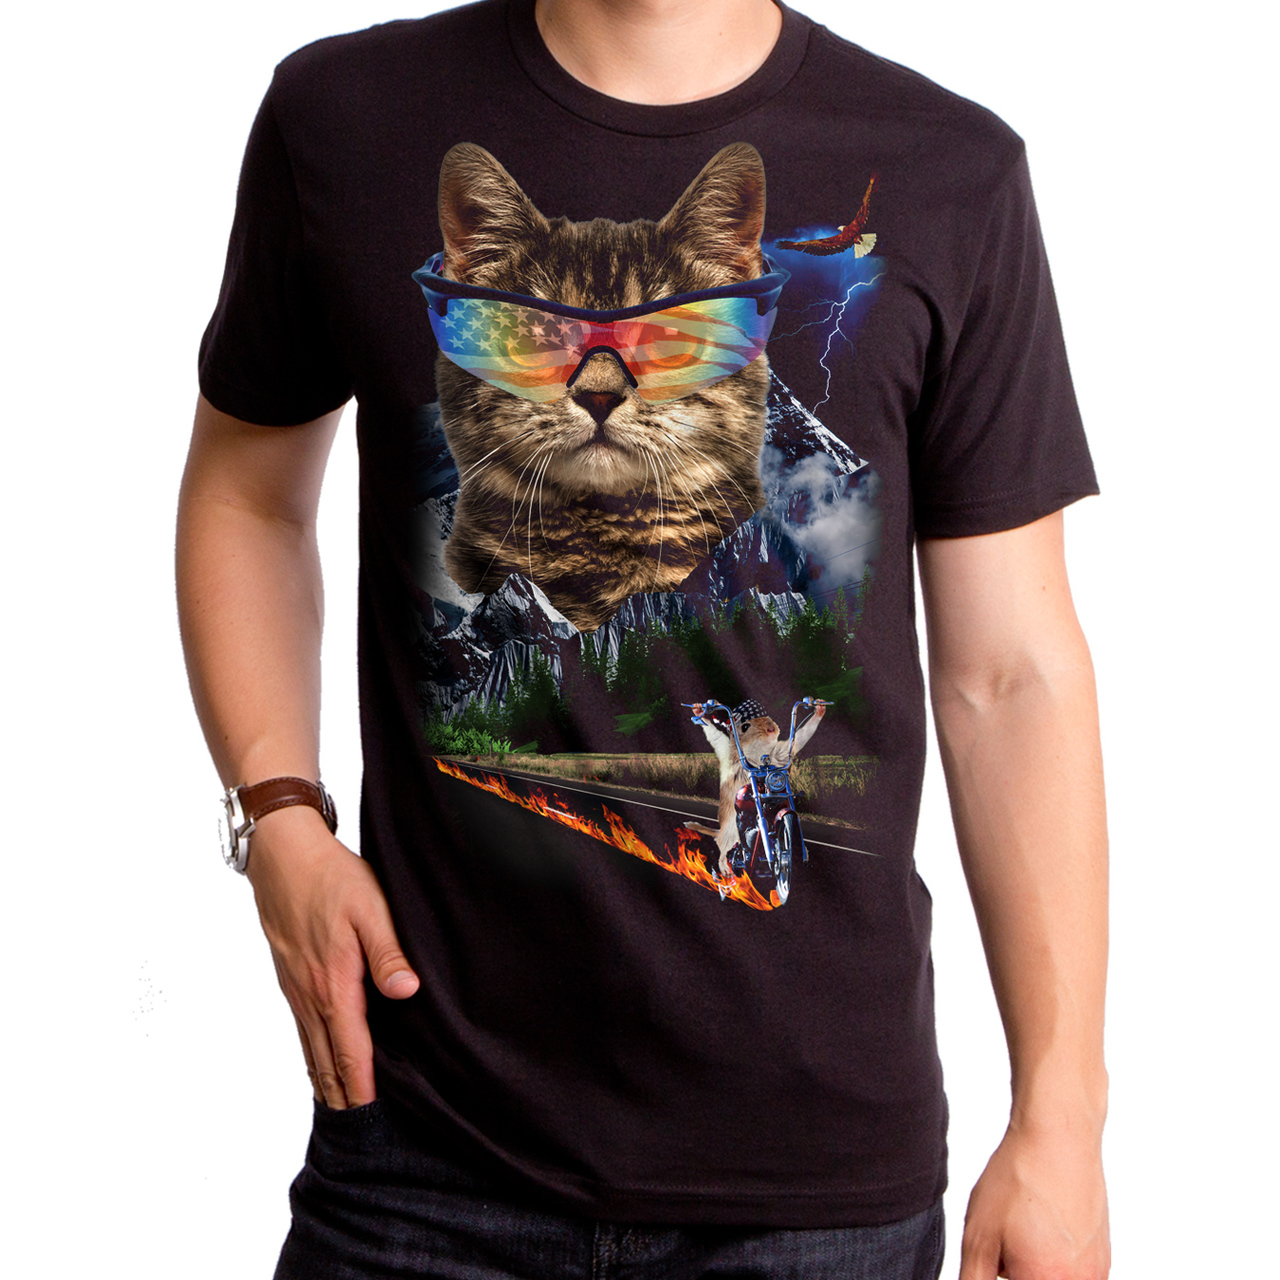 d8a8d991 Meow For Freedom Men's T-Shirt - Funny Cat Shirts, Cat T Shirt ...